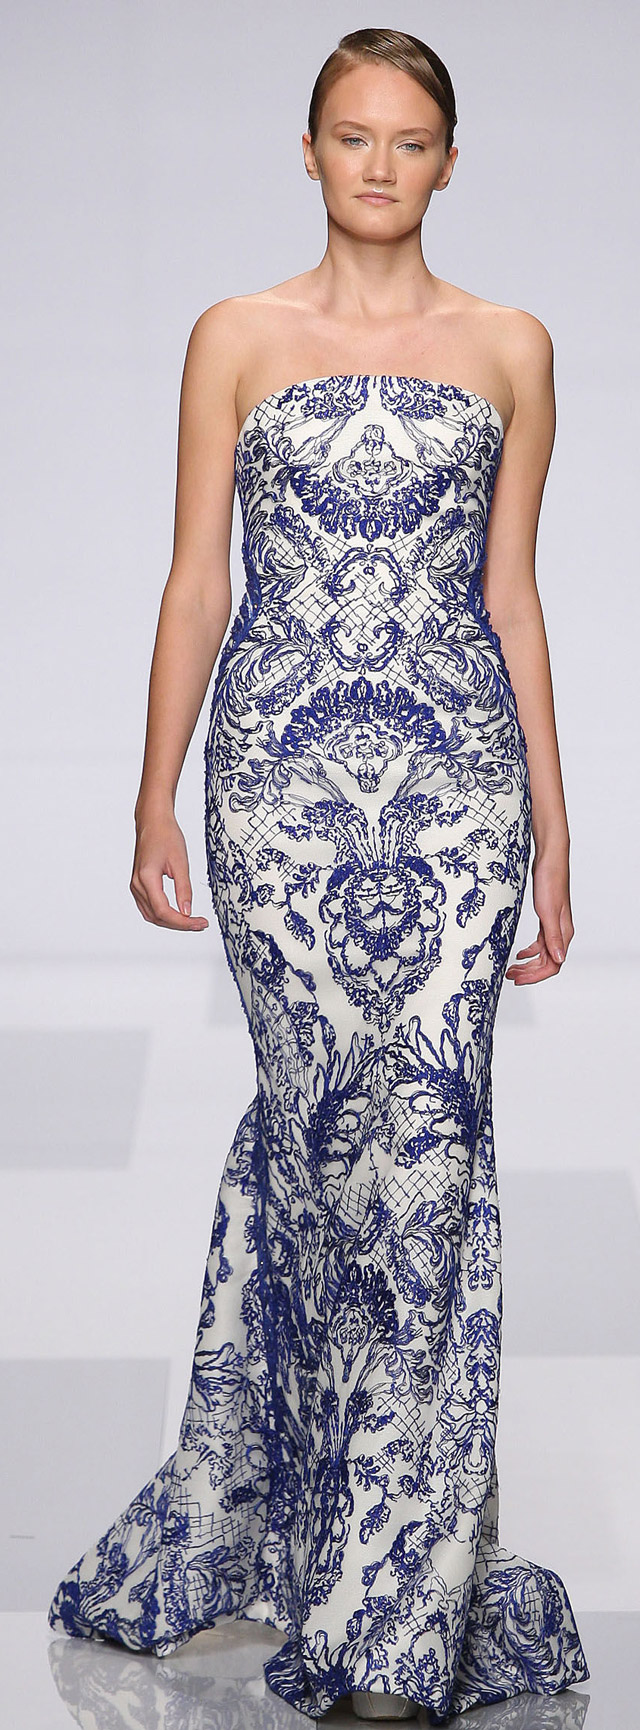 TONY WARD  COUTURE  FALL-WINTER 2013-2014 (15)